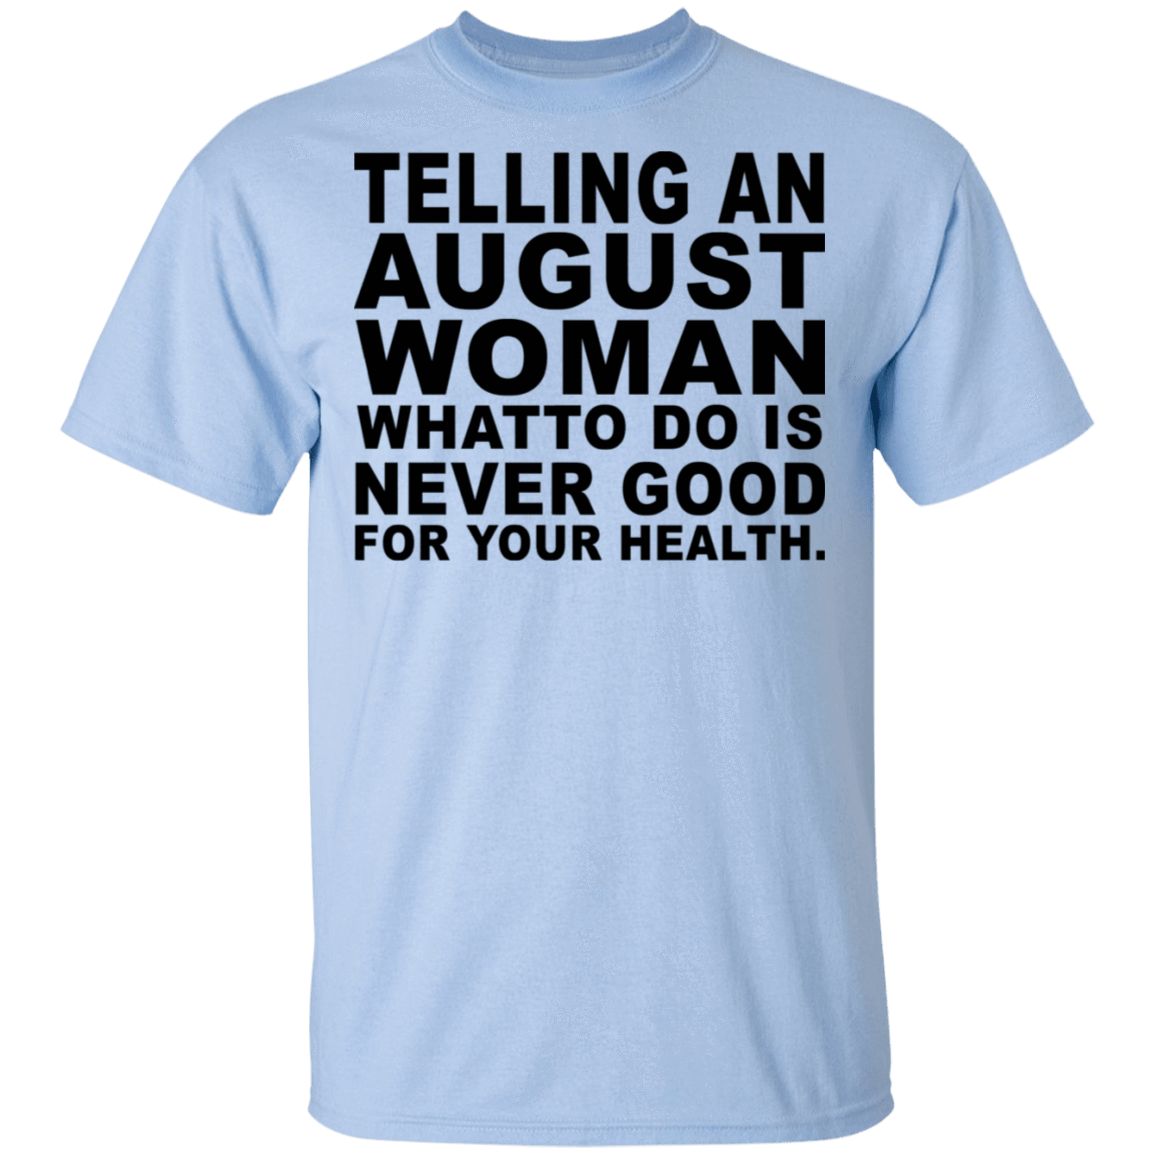 Telling An August Woman What To Do Is Never Good T-Shirts, Hoodies, Tank 22-9800-79463211-47430 - Tee Ript